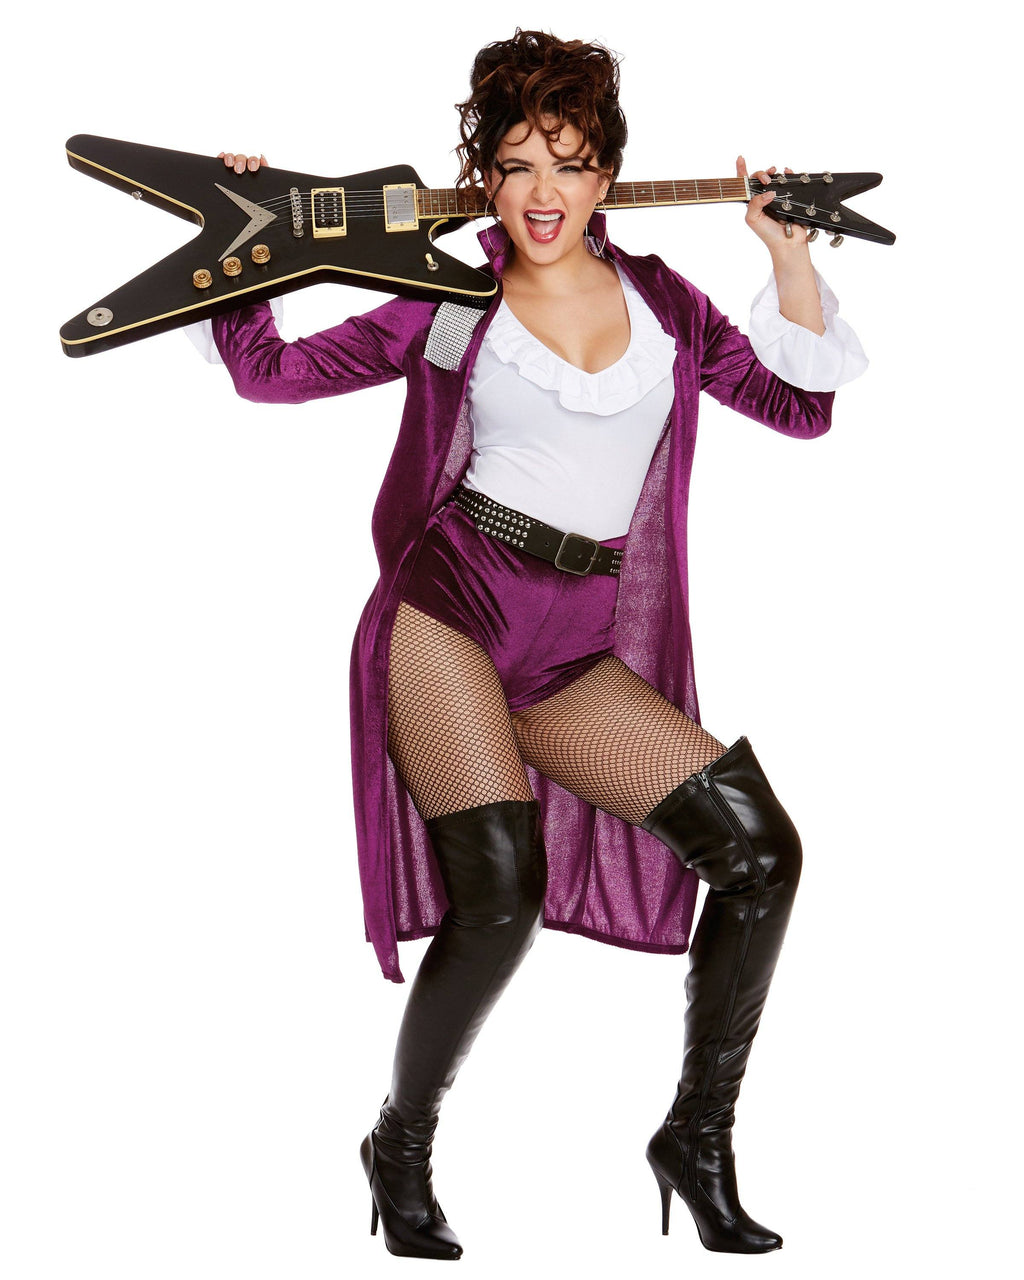 Rocker Babe Women's Costume Dreamgirl Costume